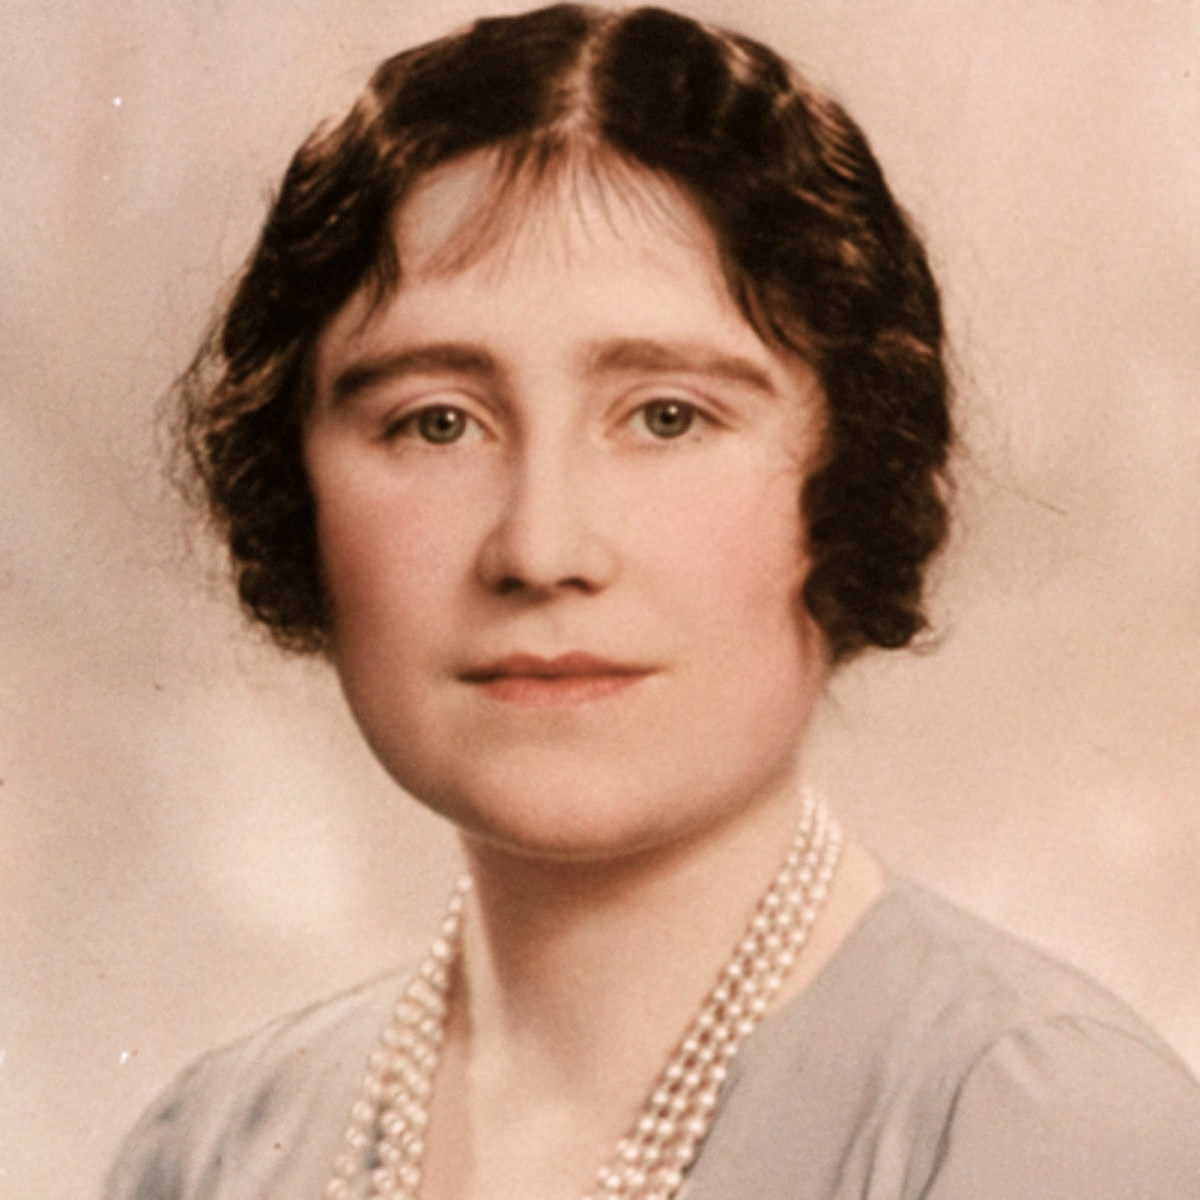 Counting Ones Blessings: The Collected Letters of Queen Elizabeth the Queen Mother